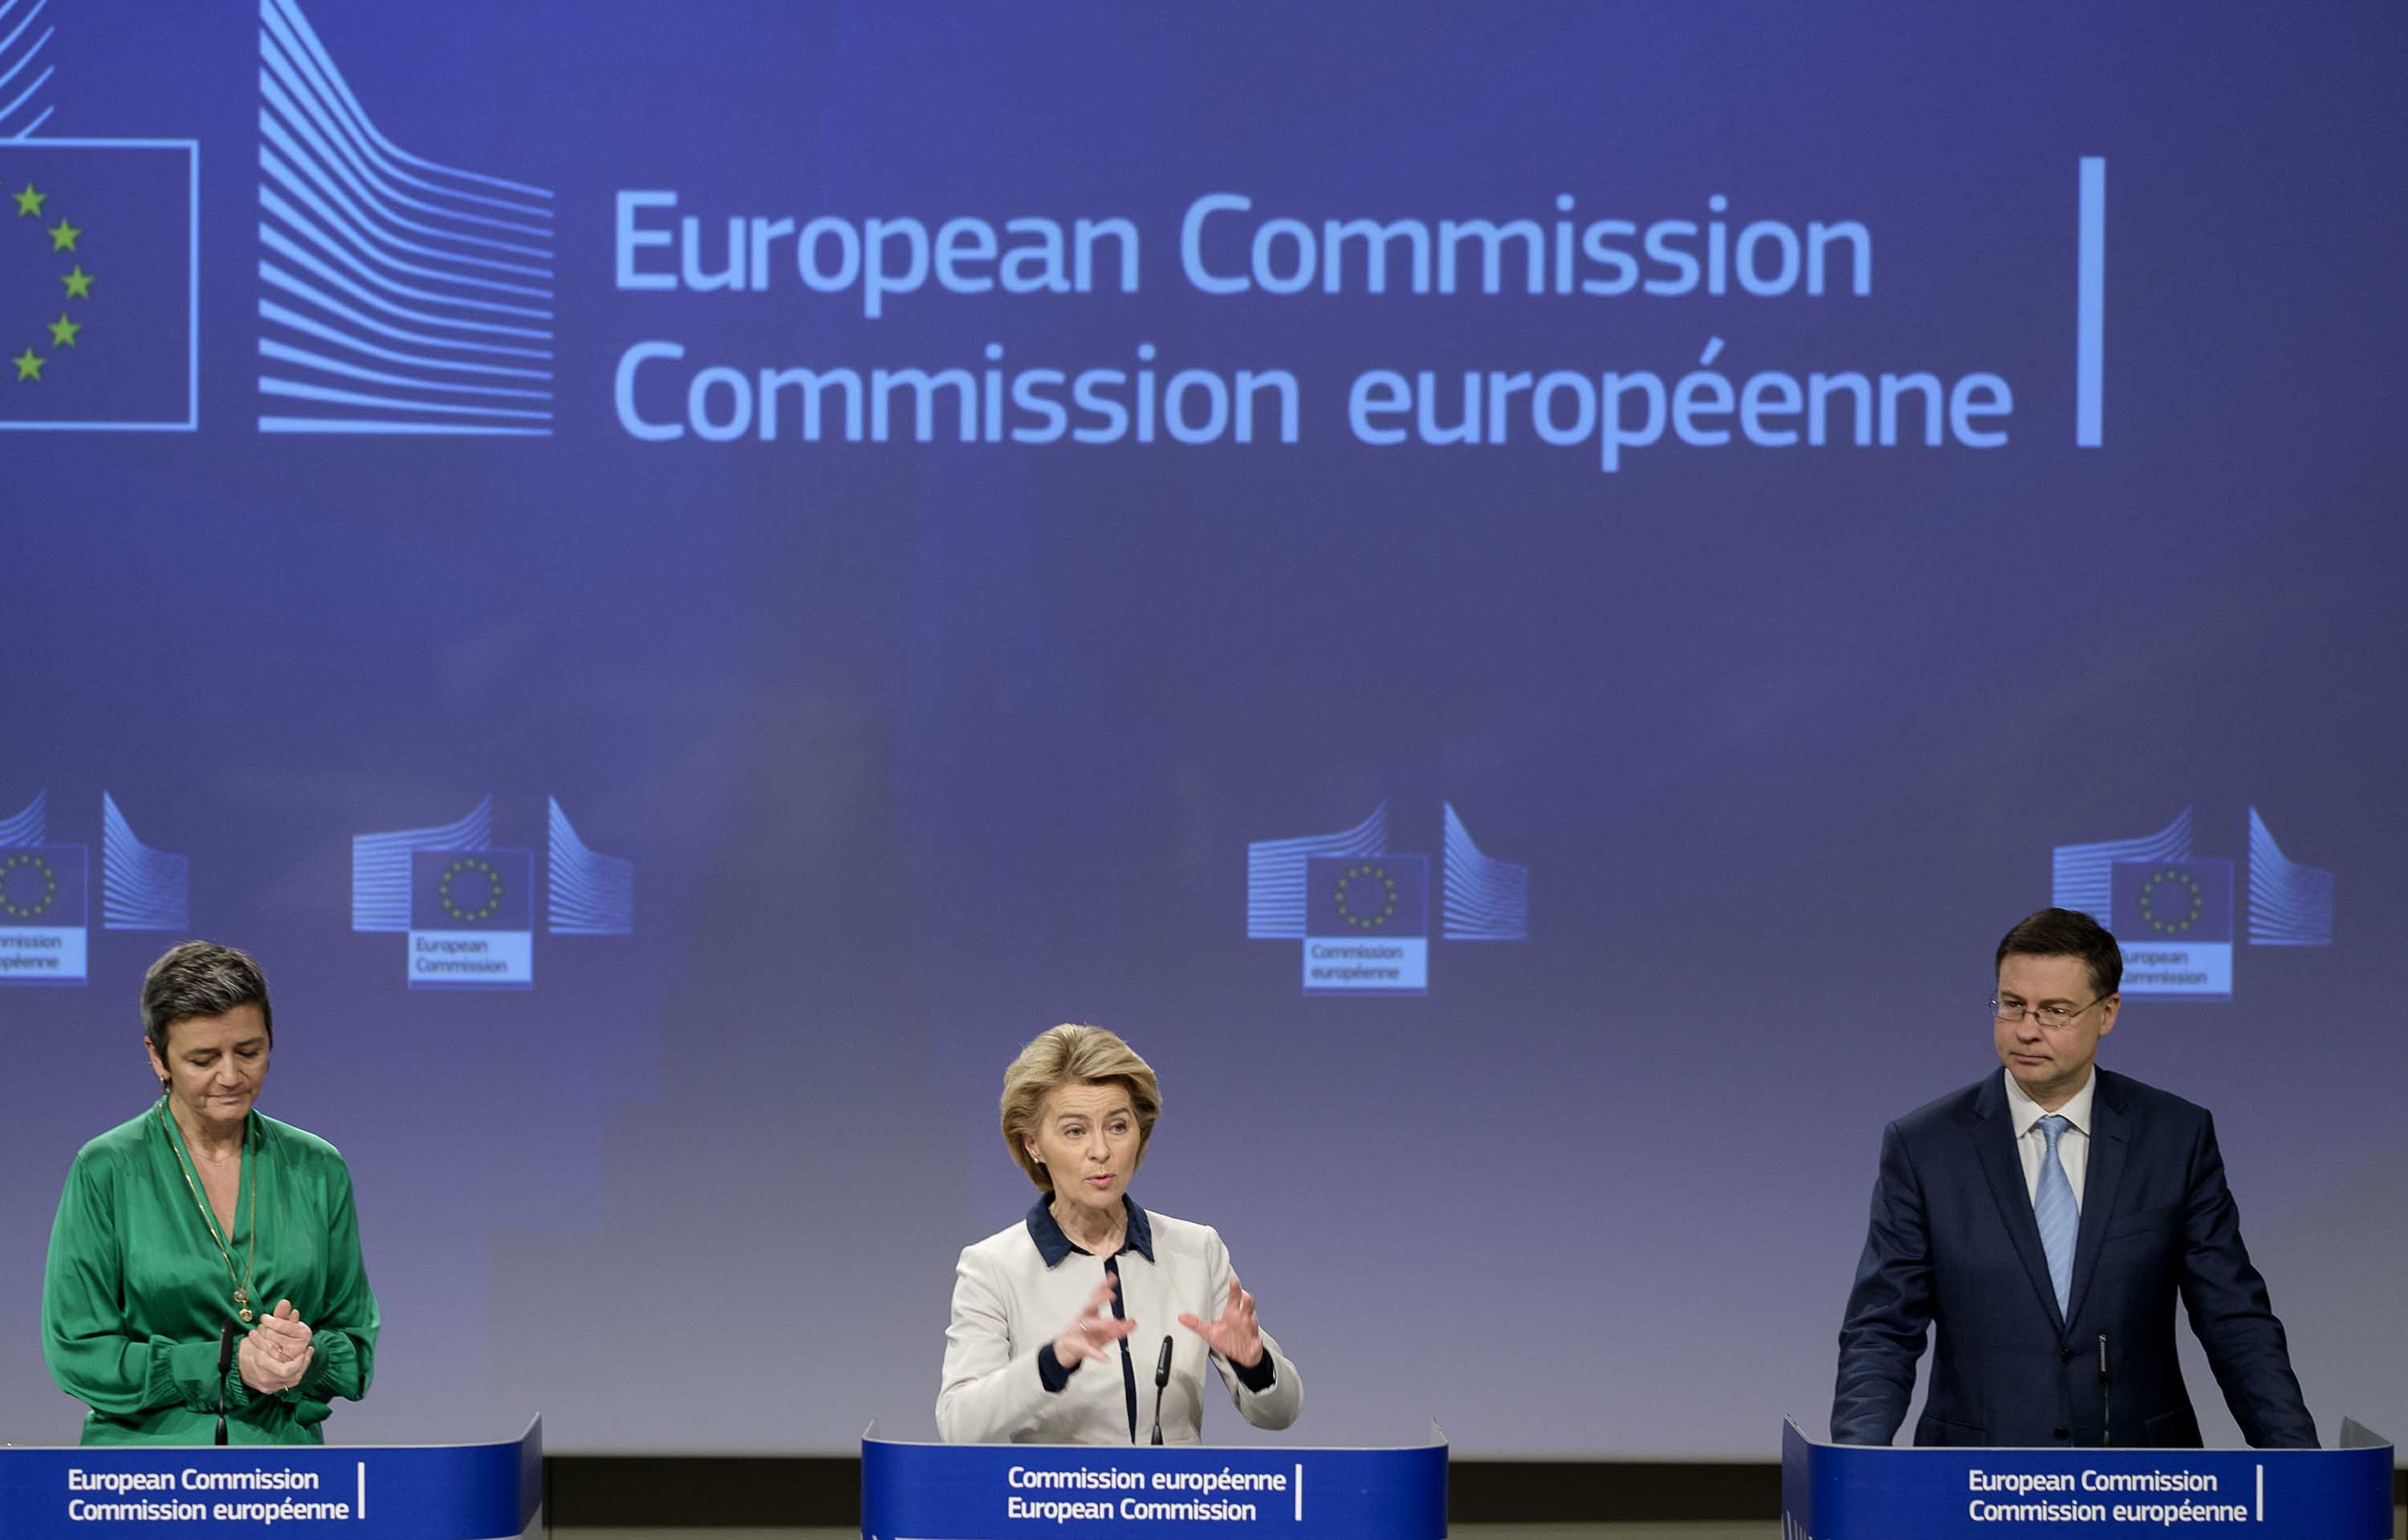 European Commission President Ursula von der Leyen, center, participates in a media conference at the European Union headquarters in Brussels, Belgium, on Friday.